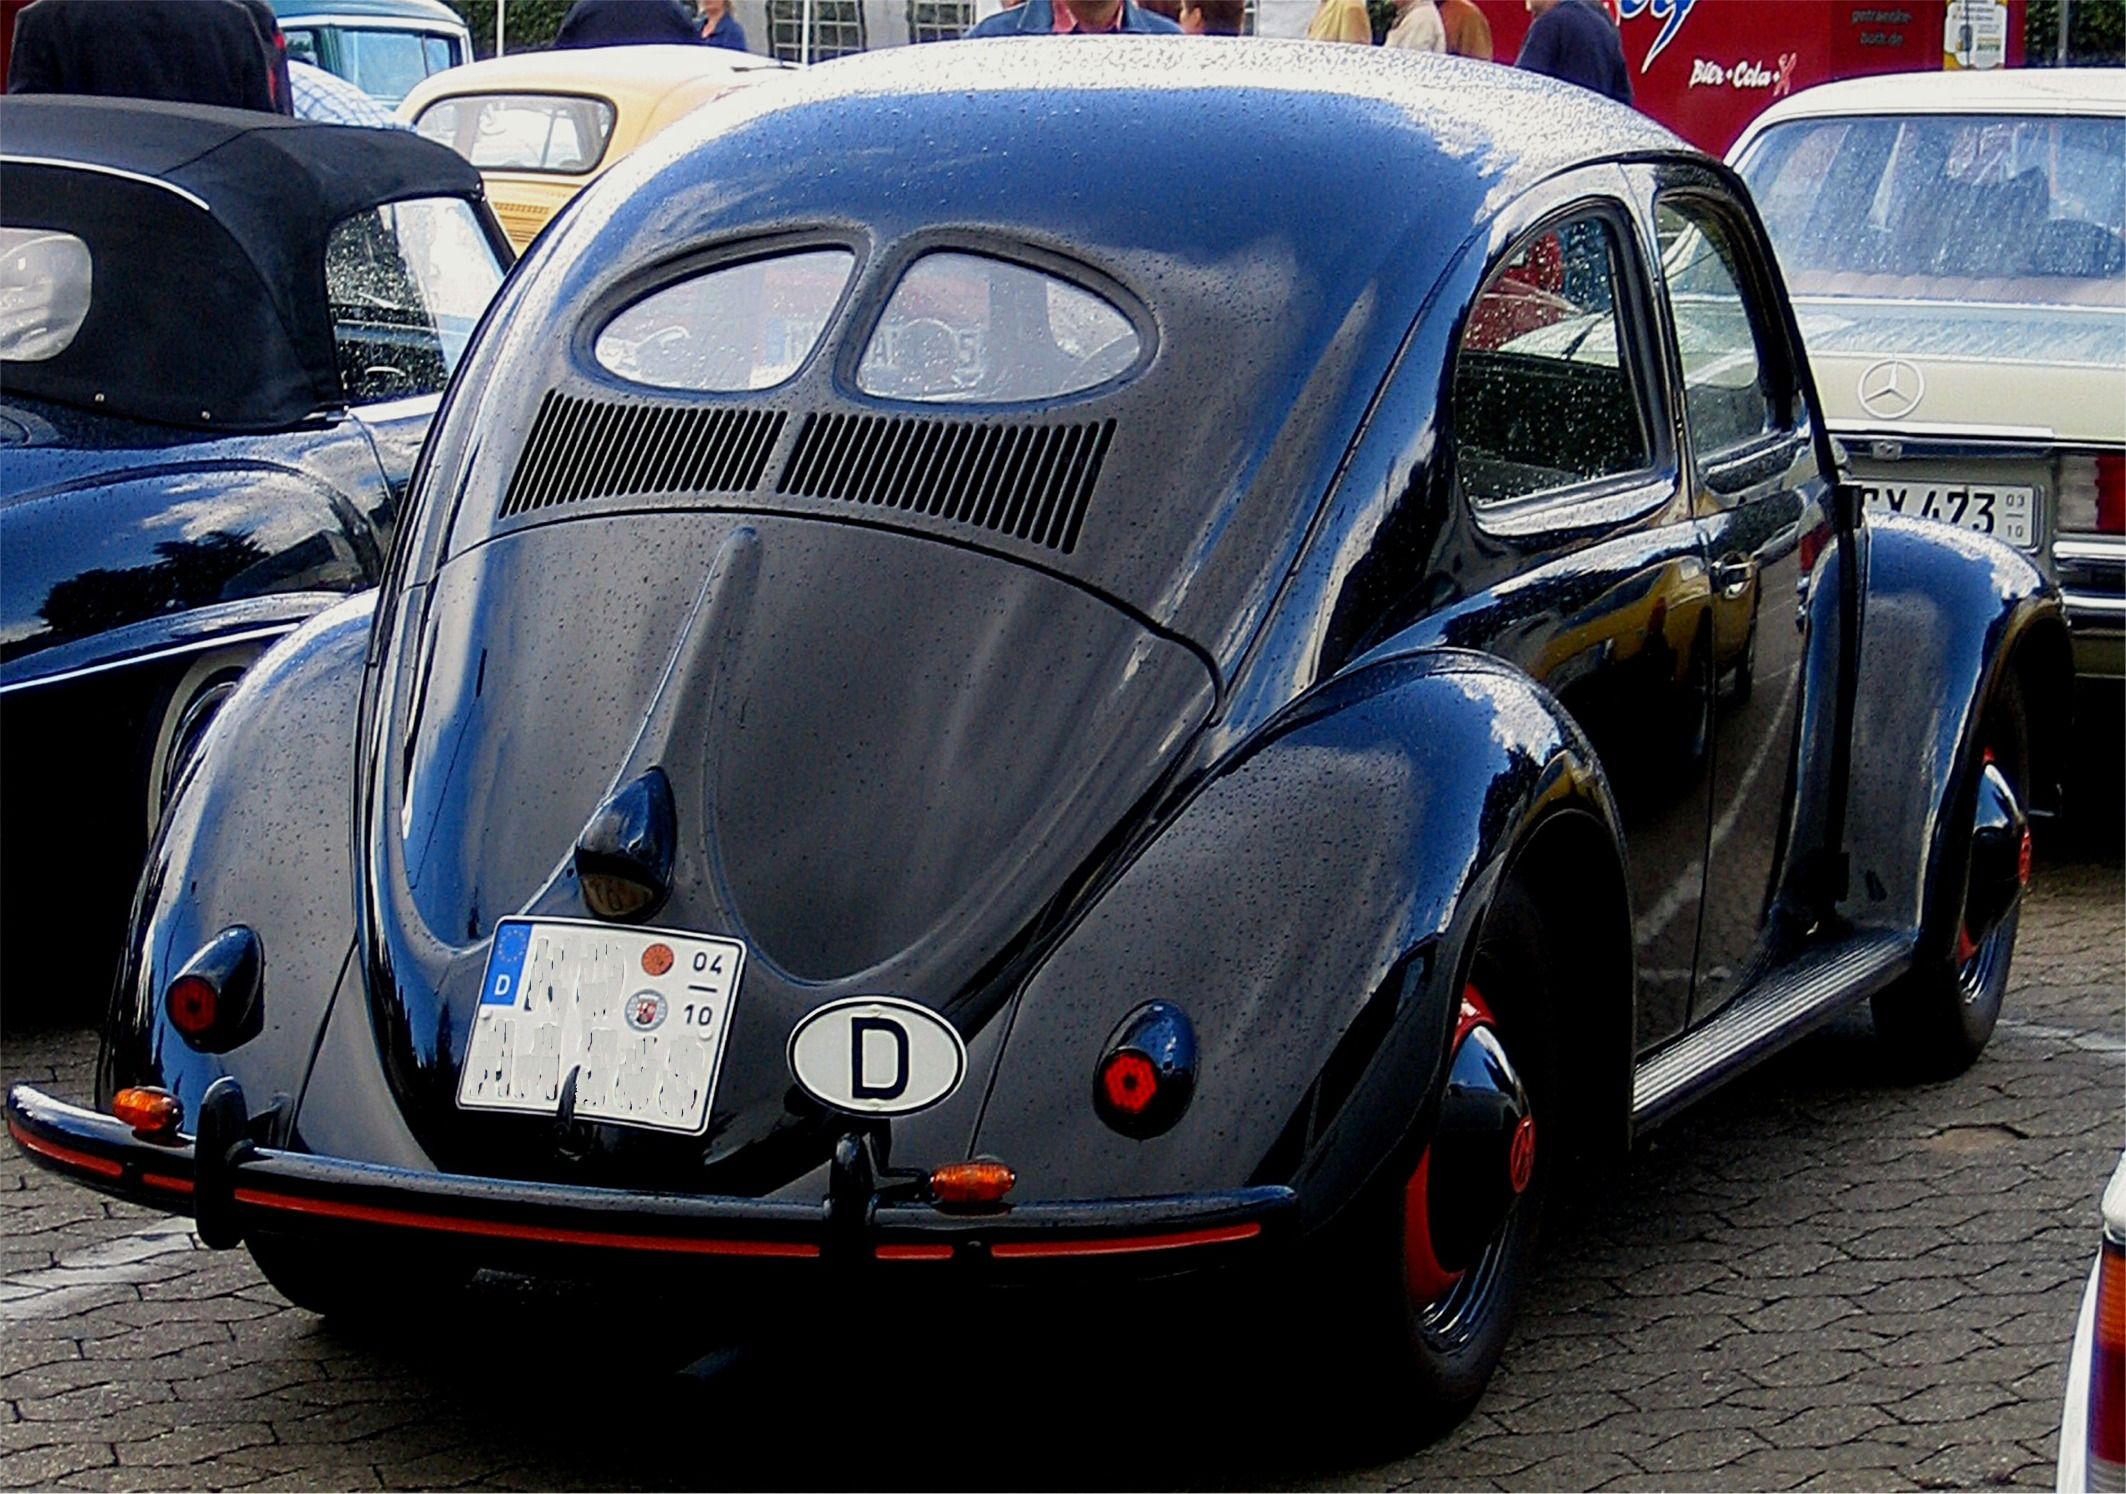 Classic Old European Cars - VW Beetle Bug, Renault and the Fico | Vw ...